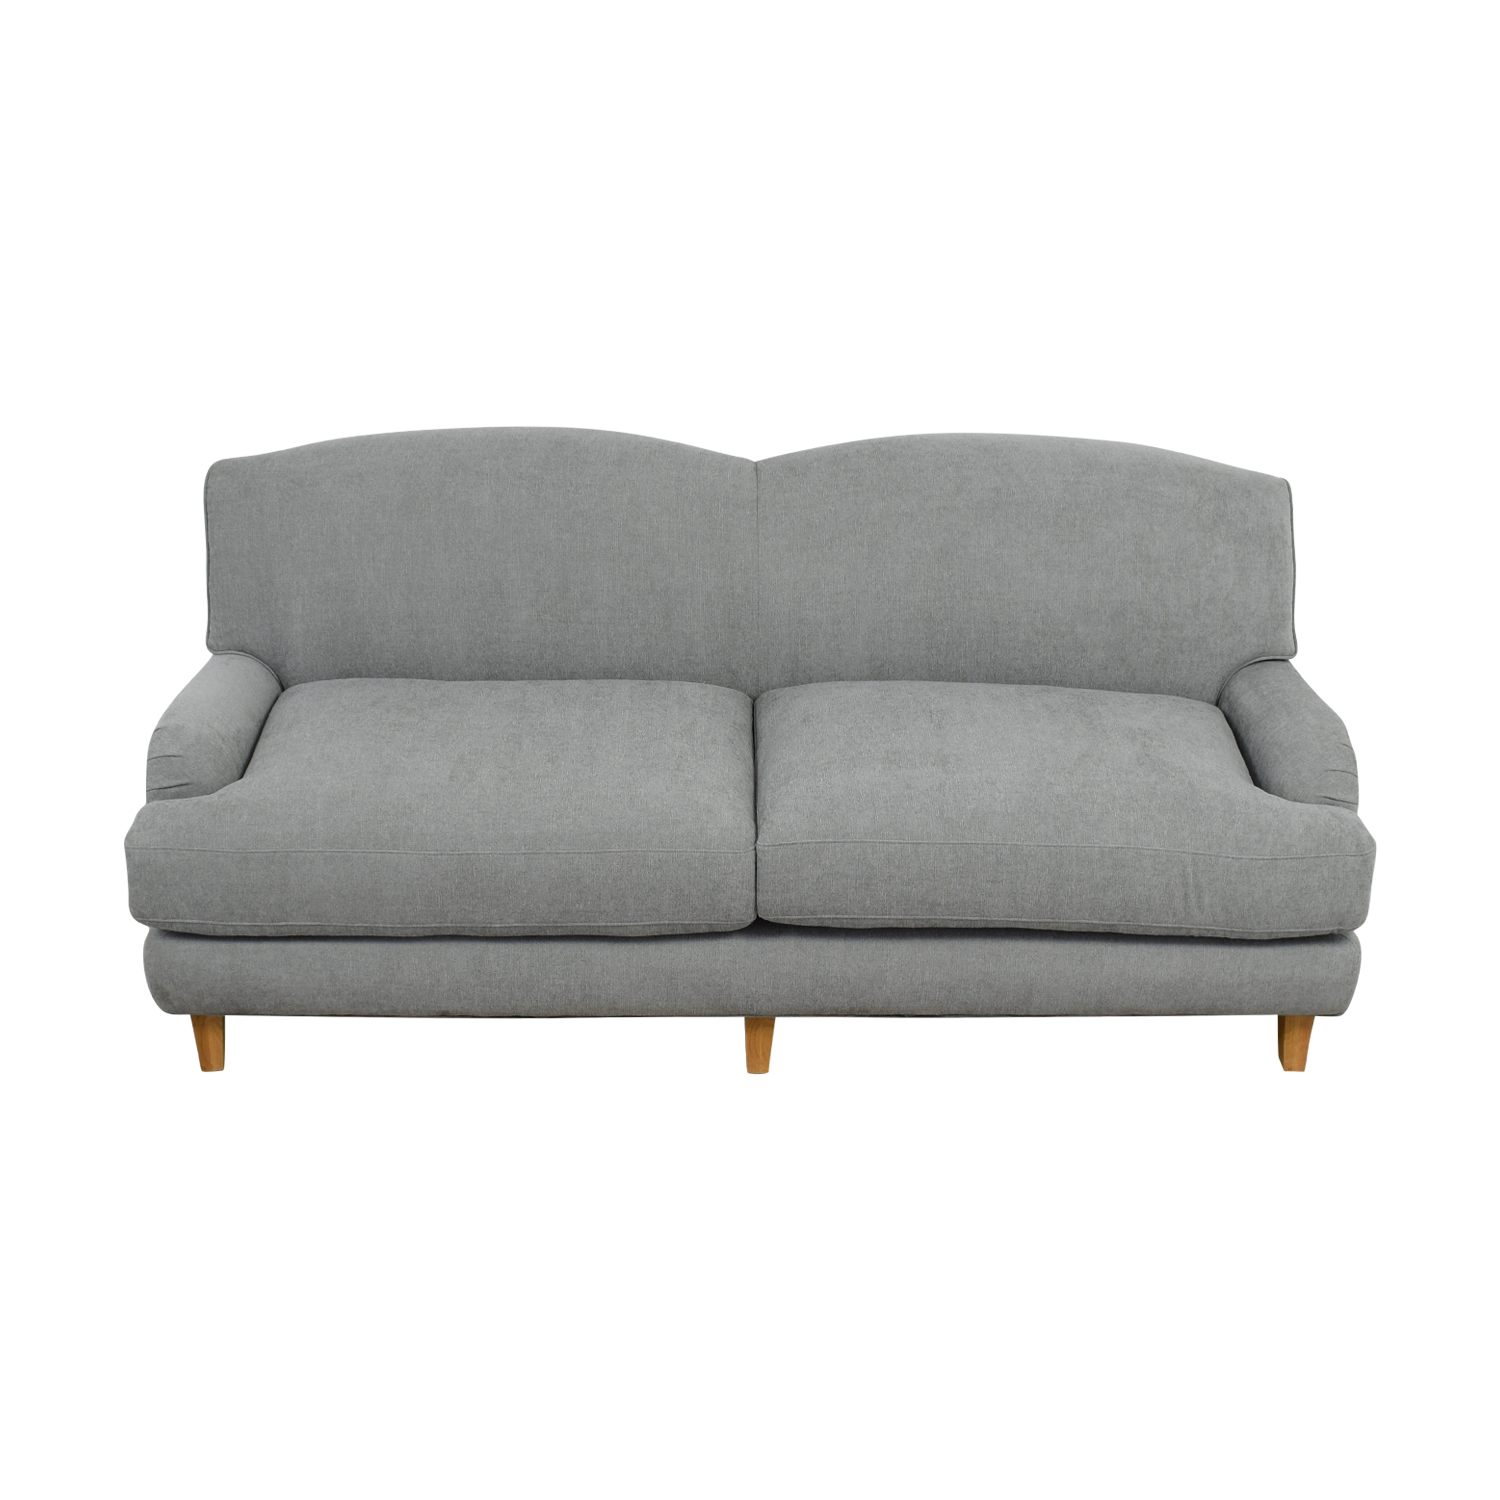 buy Grey Two-Cushion Love Seat online